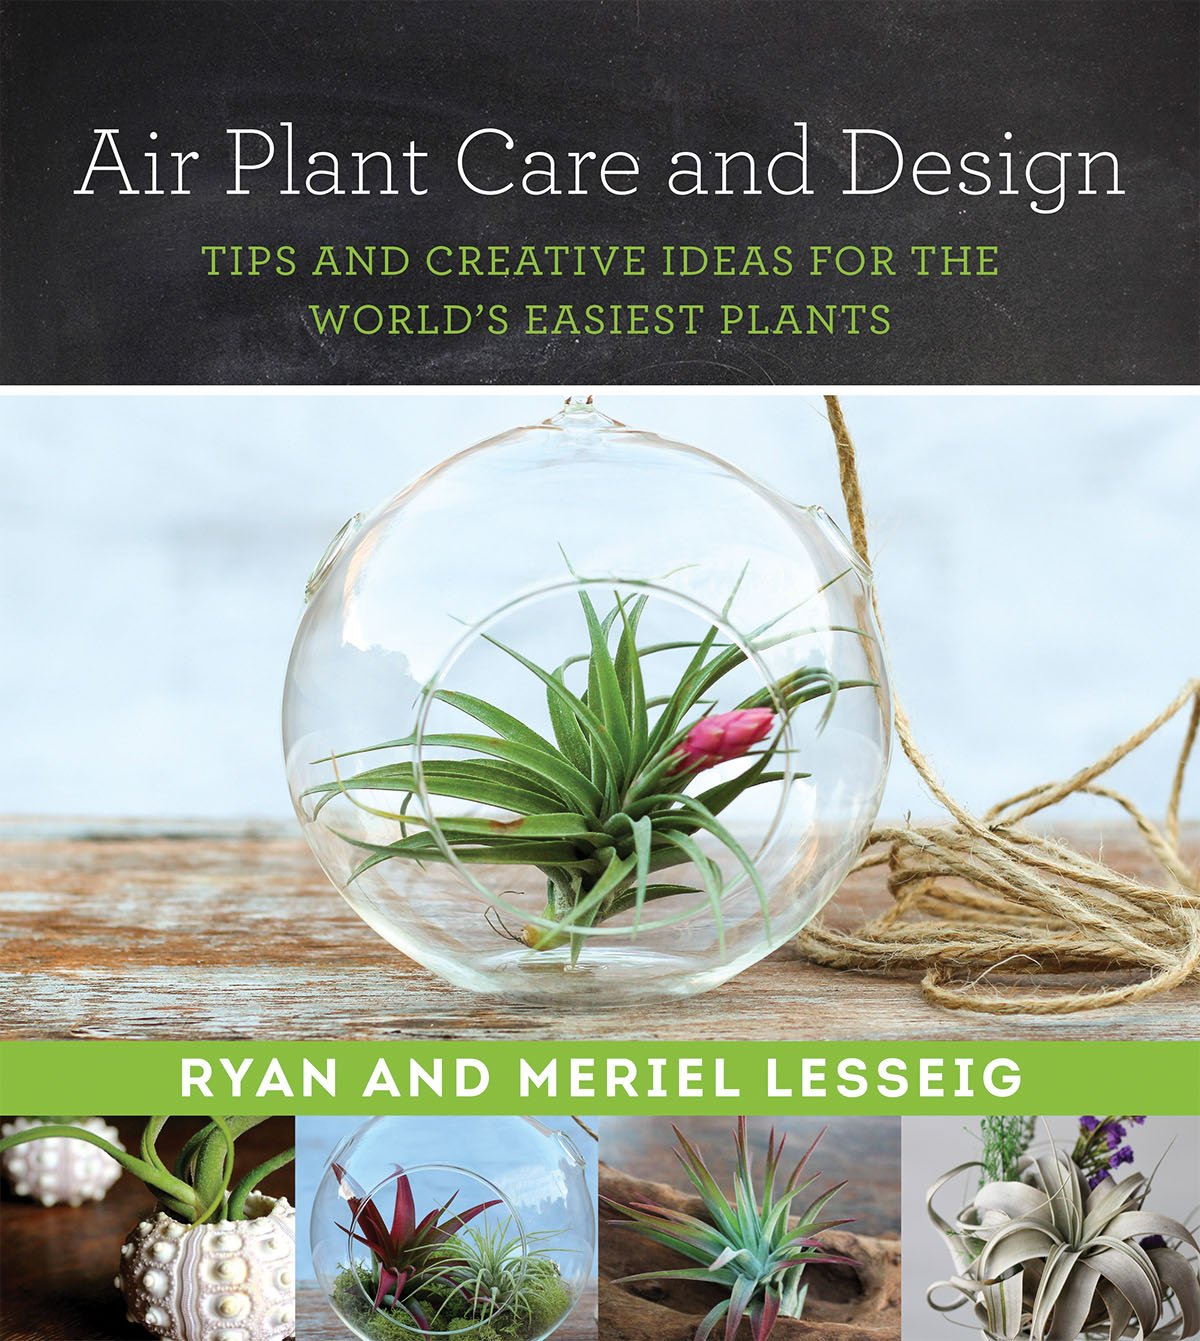 Air Plant Care And Design Tips And Creative Ideas For The World S Easiest Plants Lesseig Ryan Lesseig Meriel 9781680991543 Amazon Com Books